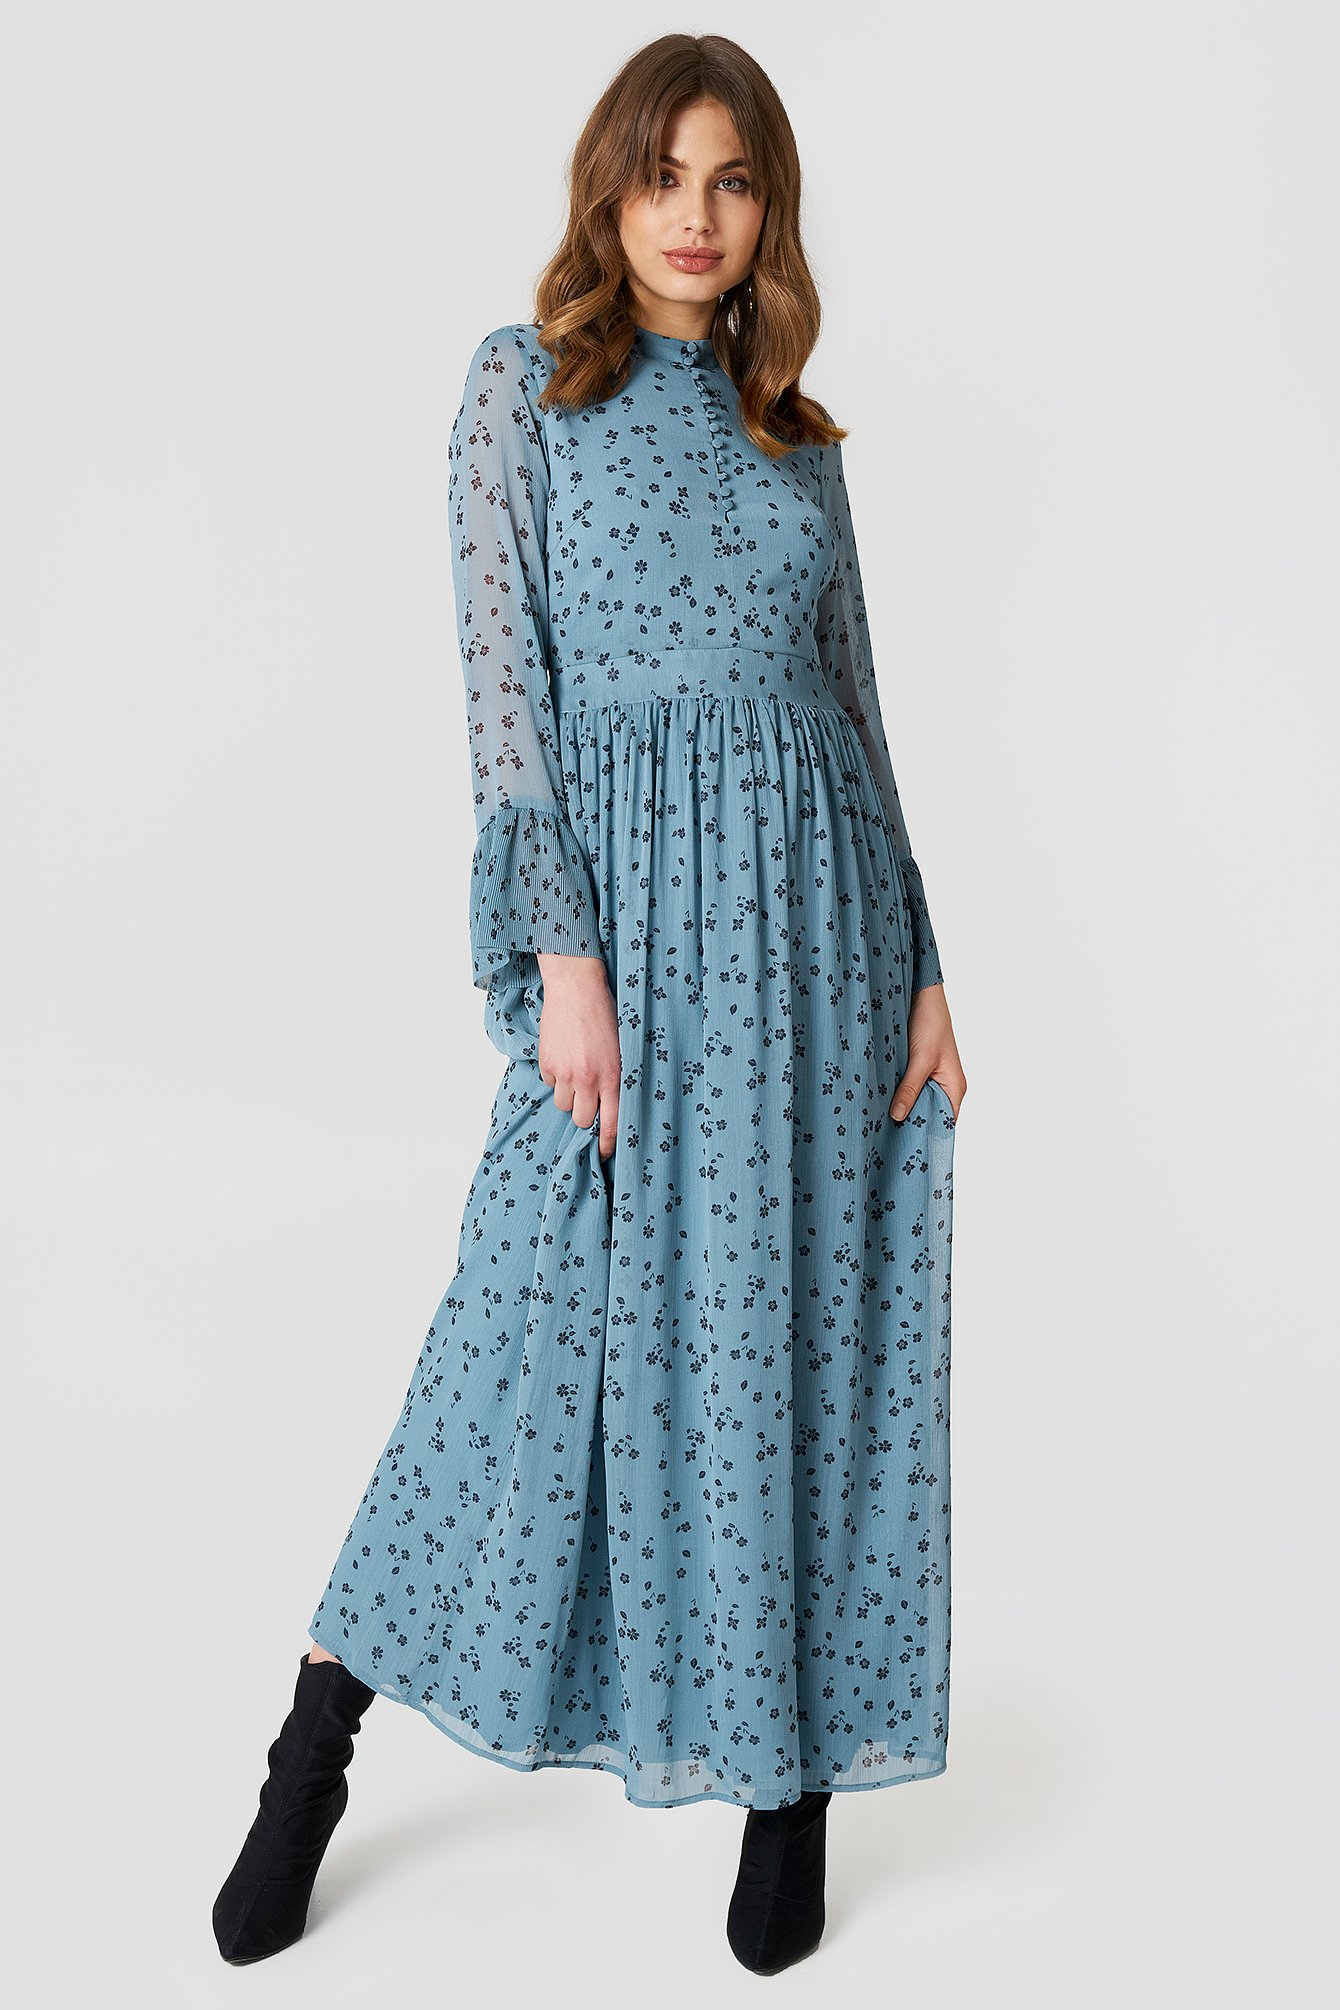 Jeanett Long Dress NA-KD.COM